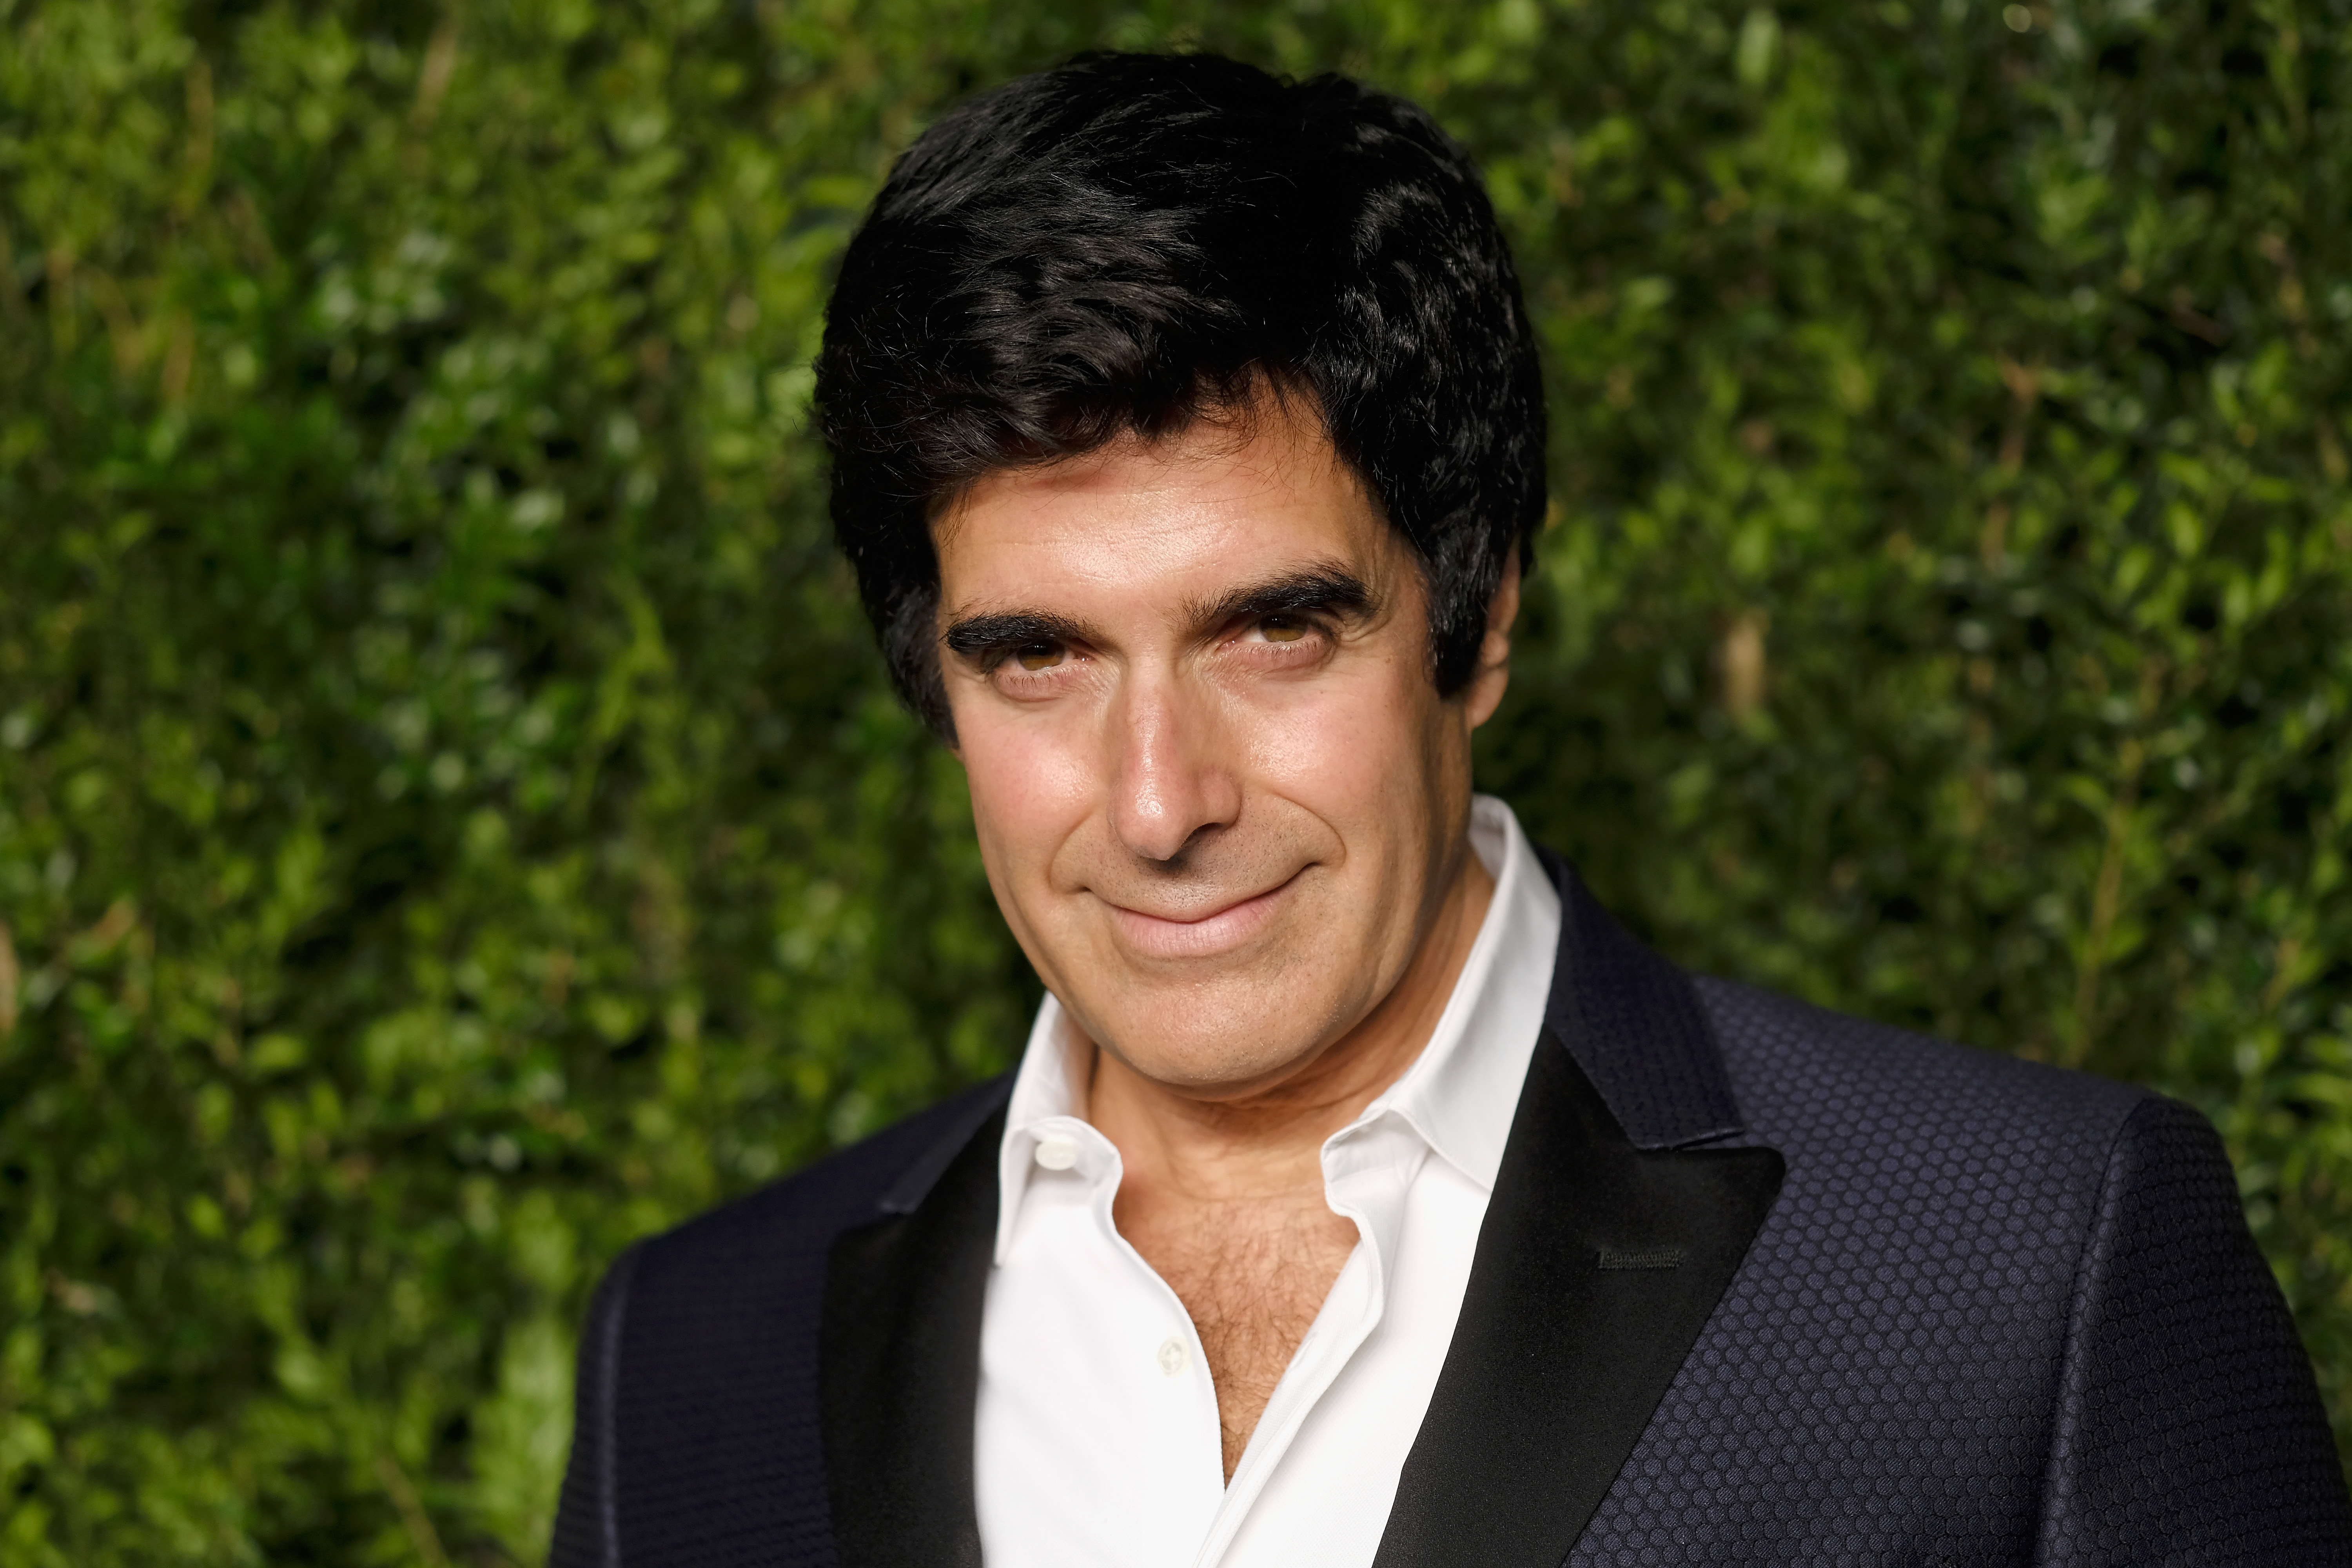 Illusionist David Copperfield attends 13th Annual CFDA/Vogue Fashion Fund Awards at Spring Studios on November 7, 2016 in New York City.